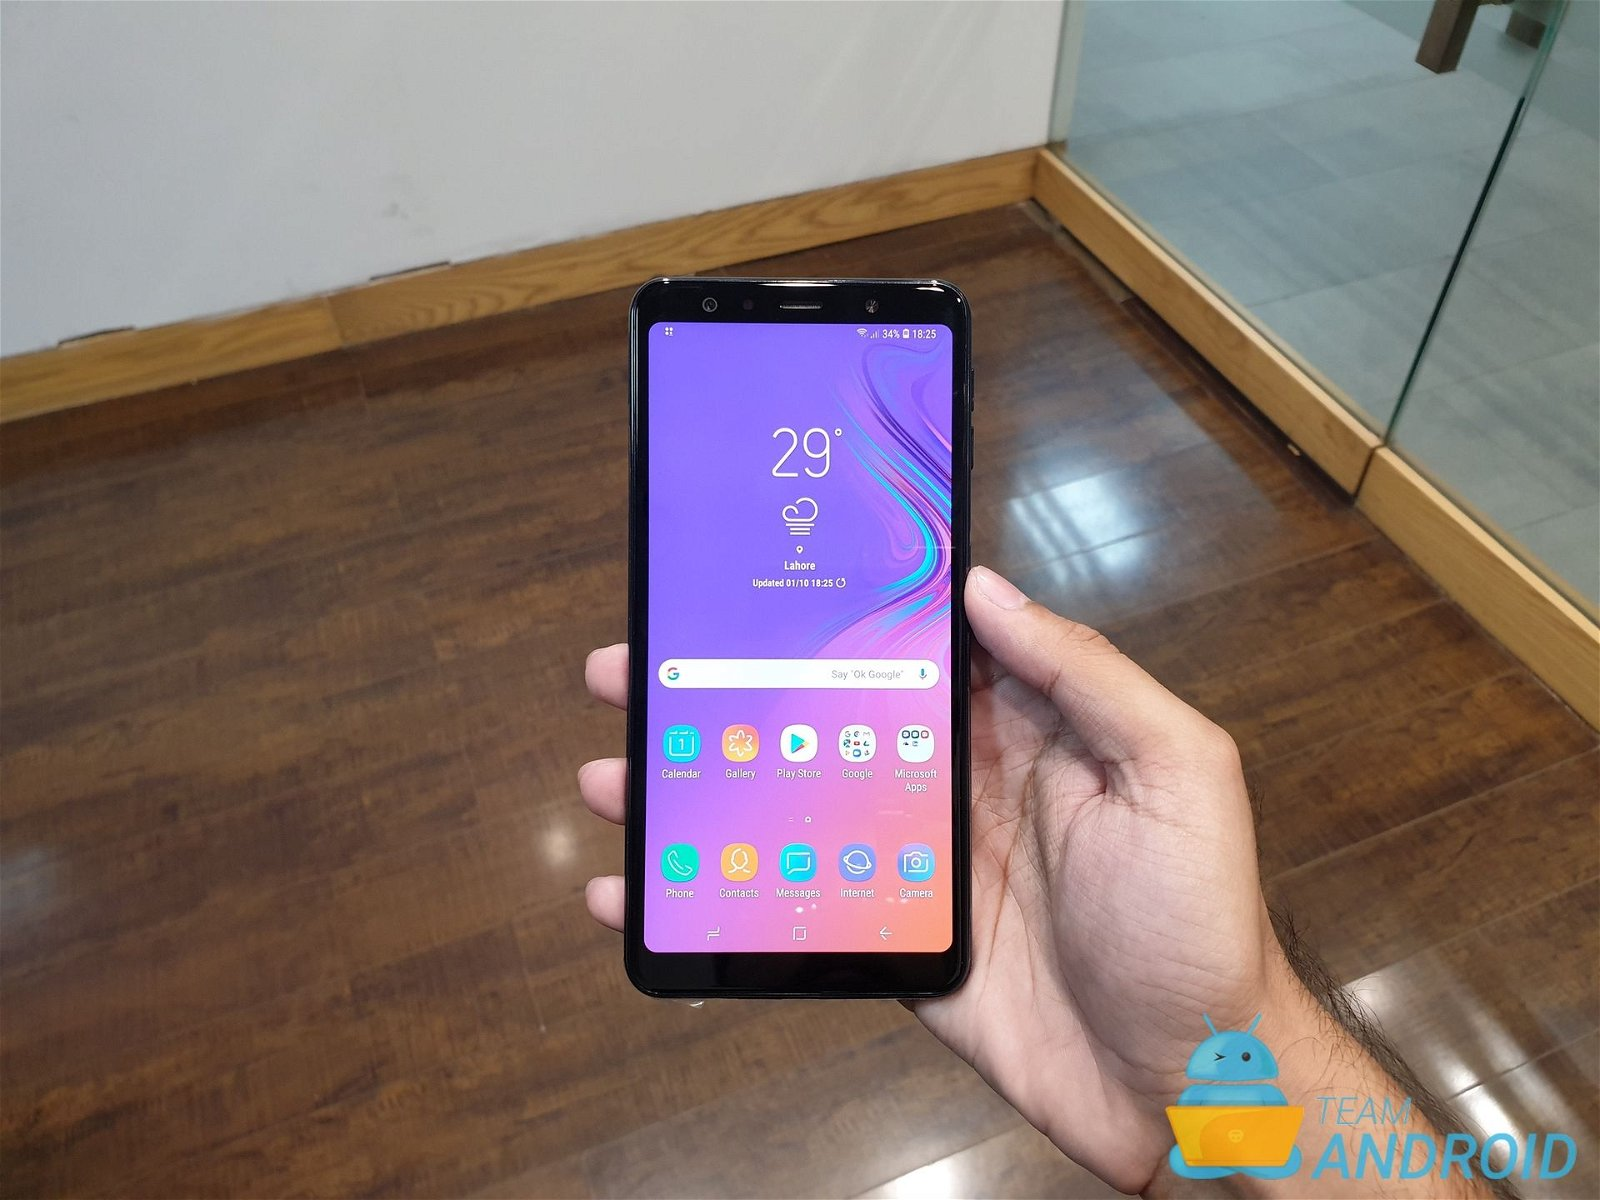 Samsung Galaxy A7 (2018) Hands-On: Review, Pictures, Video